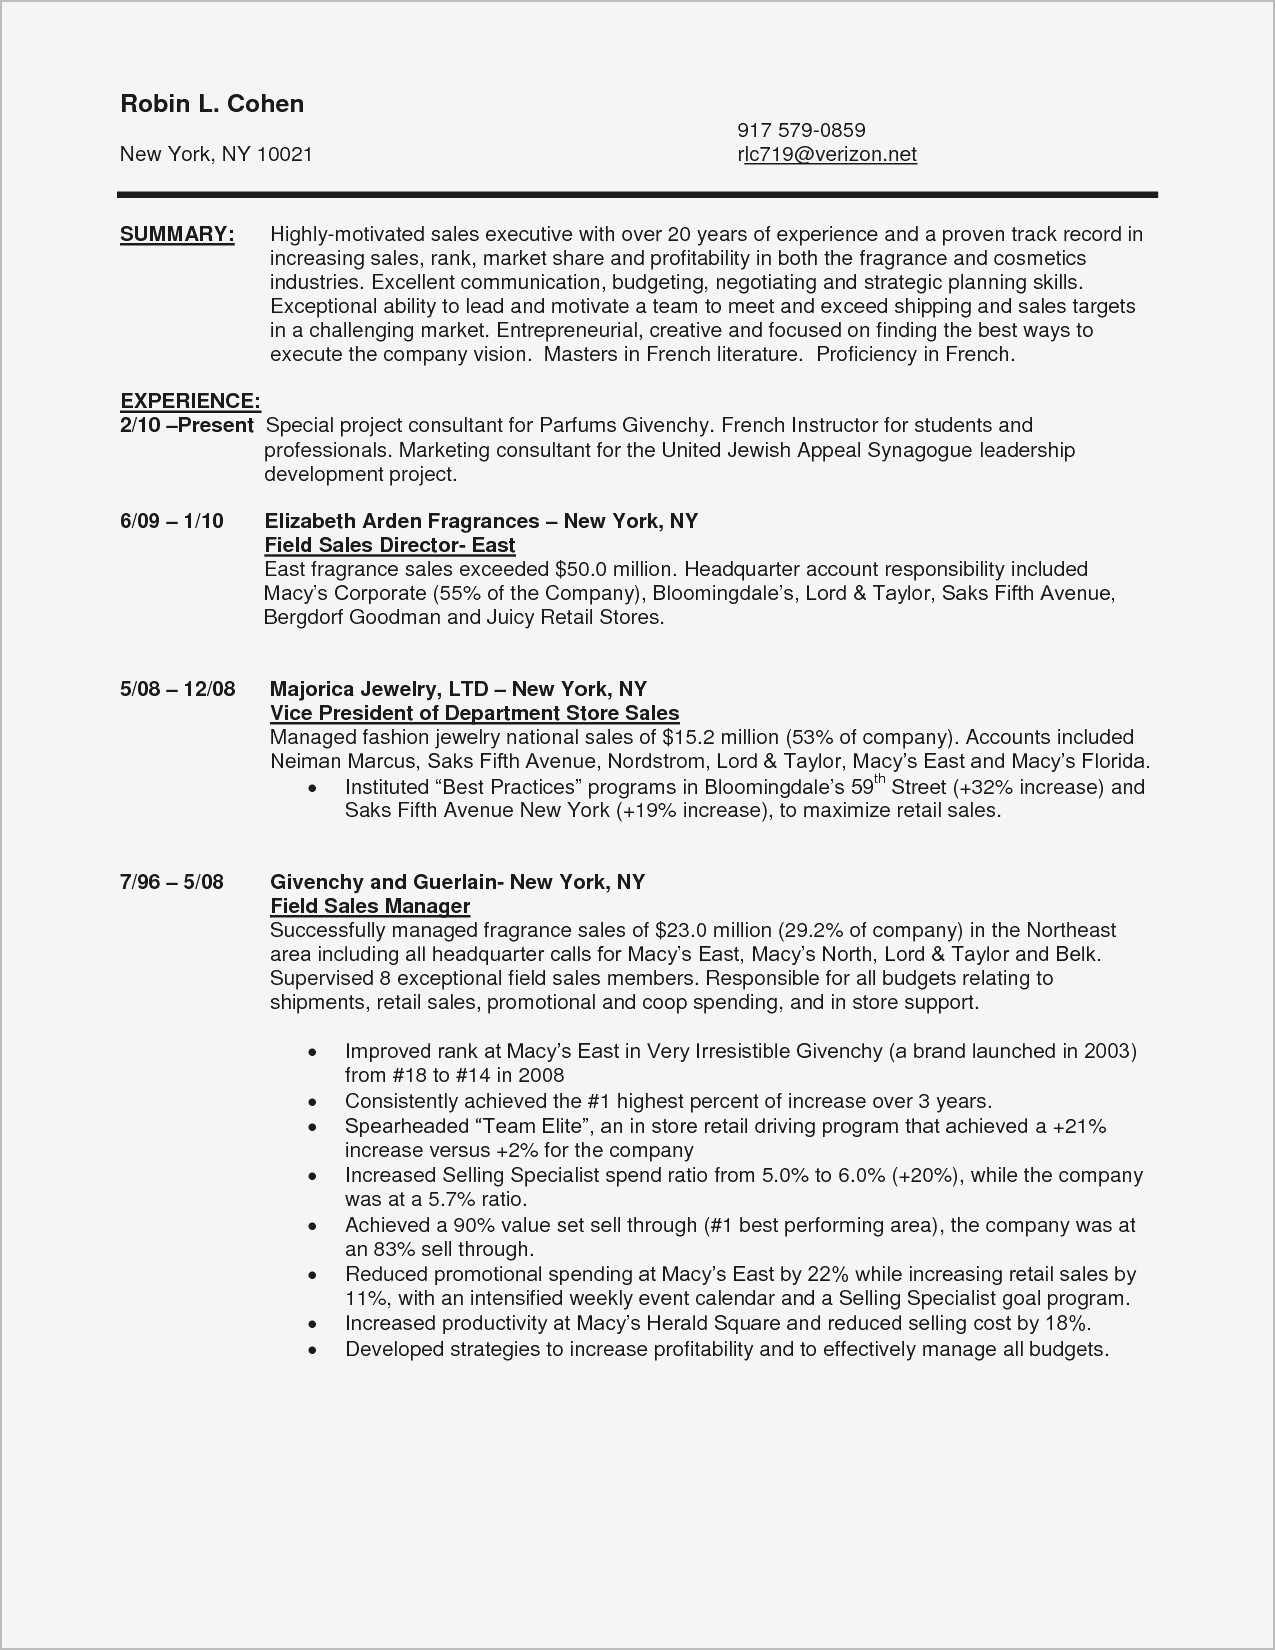 internal resume sample Collection-Resume For Internal Promotion Template Sample Pdf Beautiful American Resume Sample New Student Resume 0d Wallpapers 42 1-m